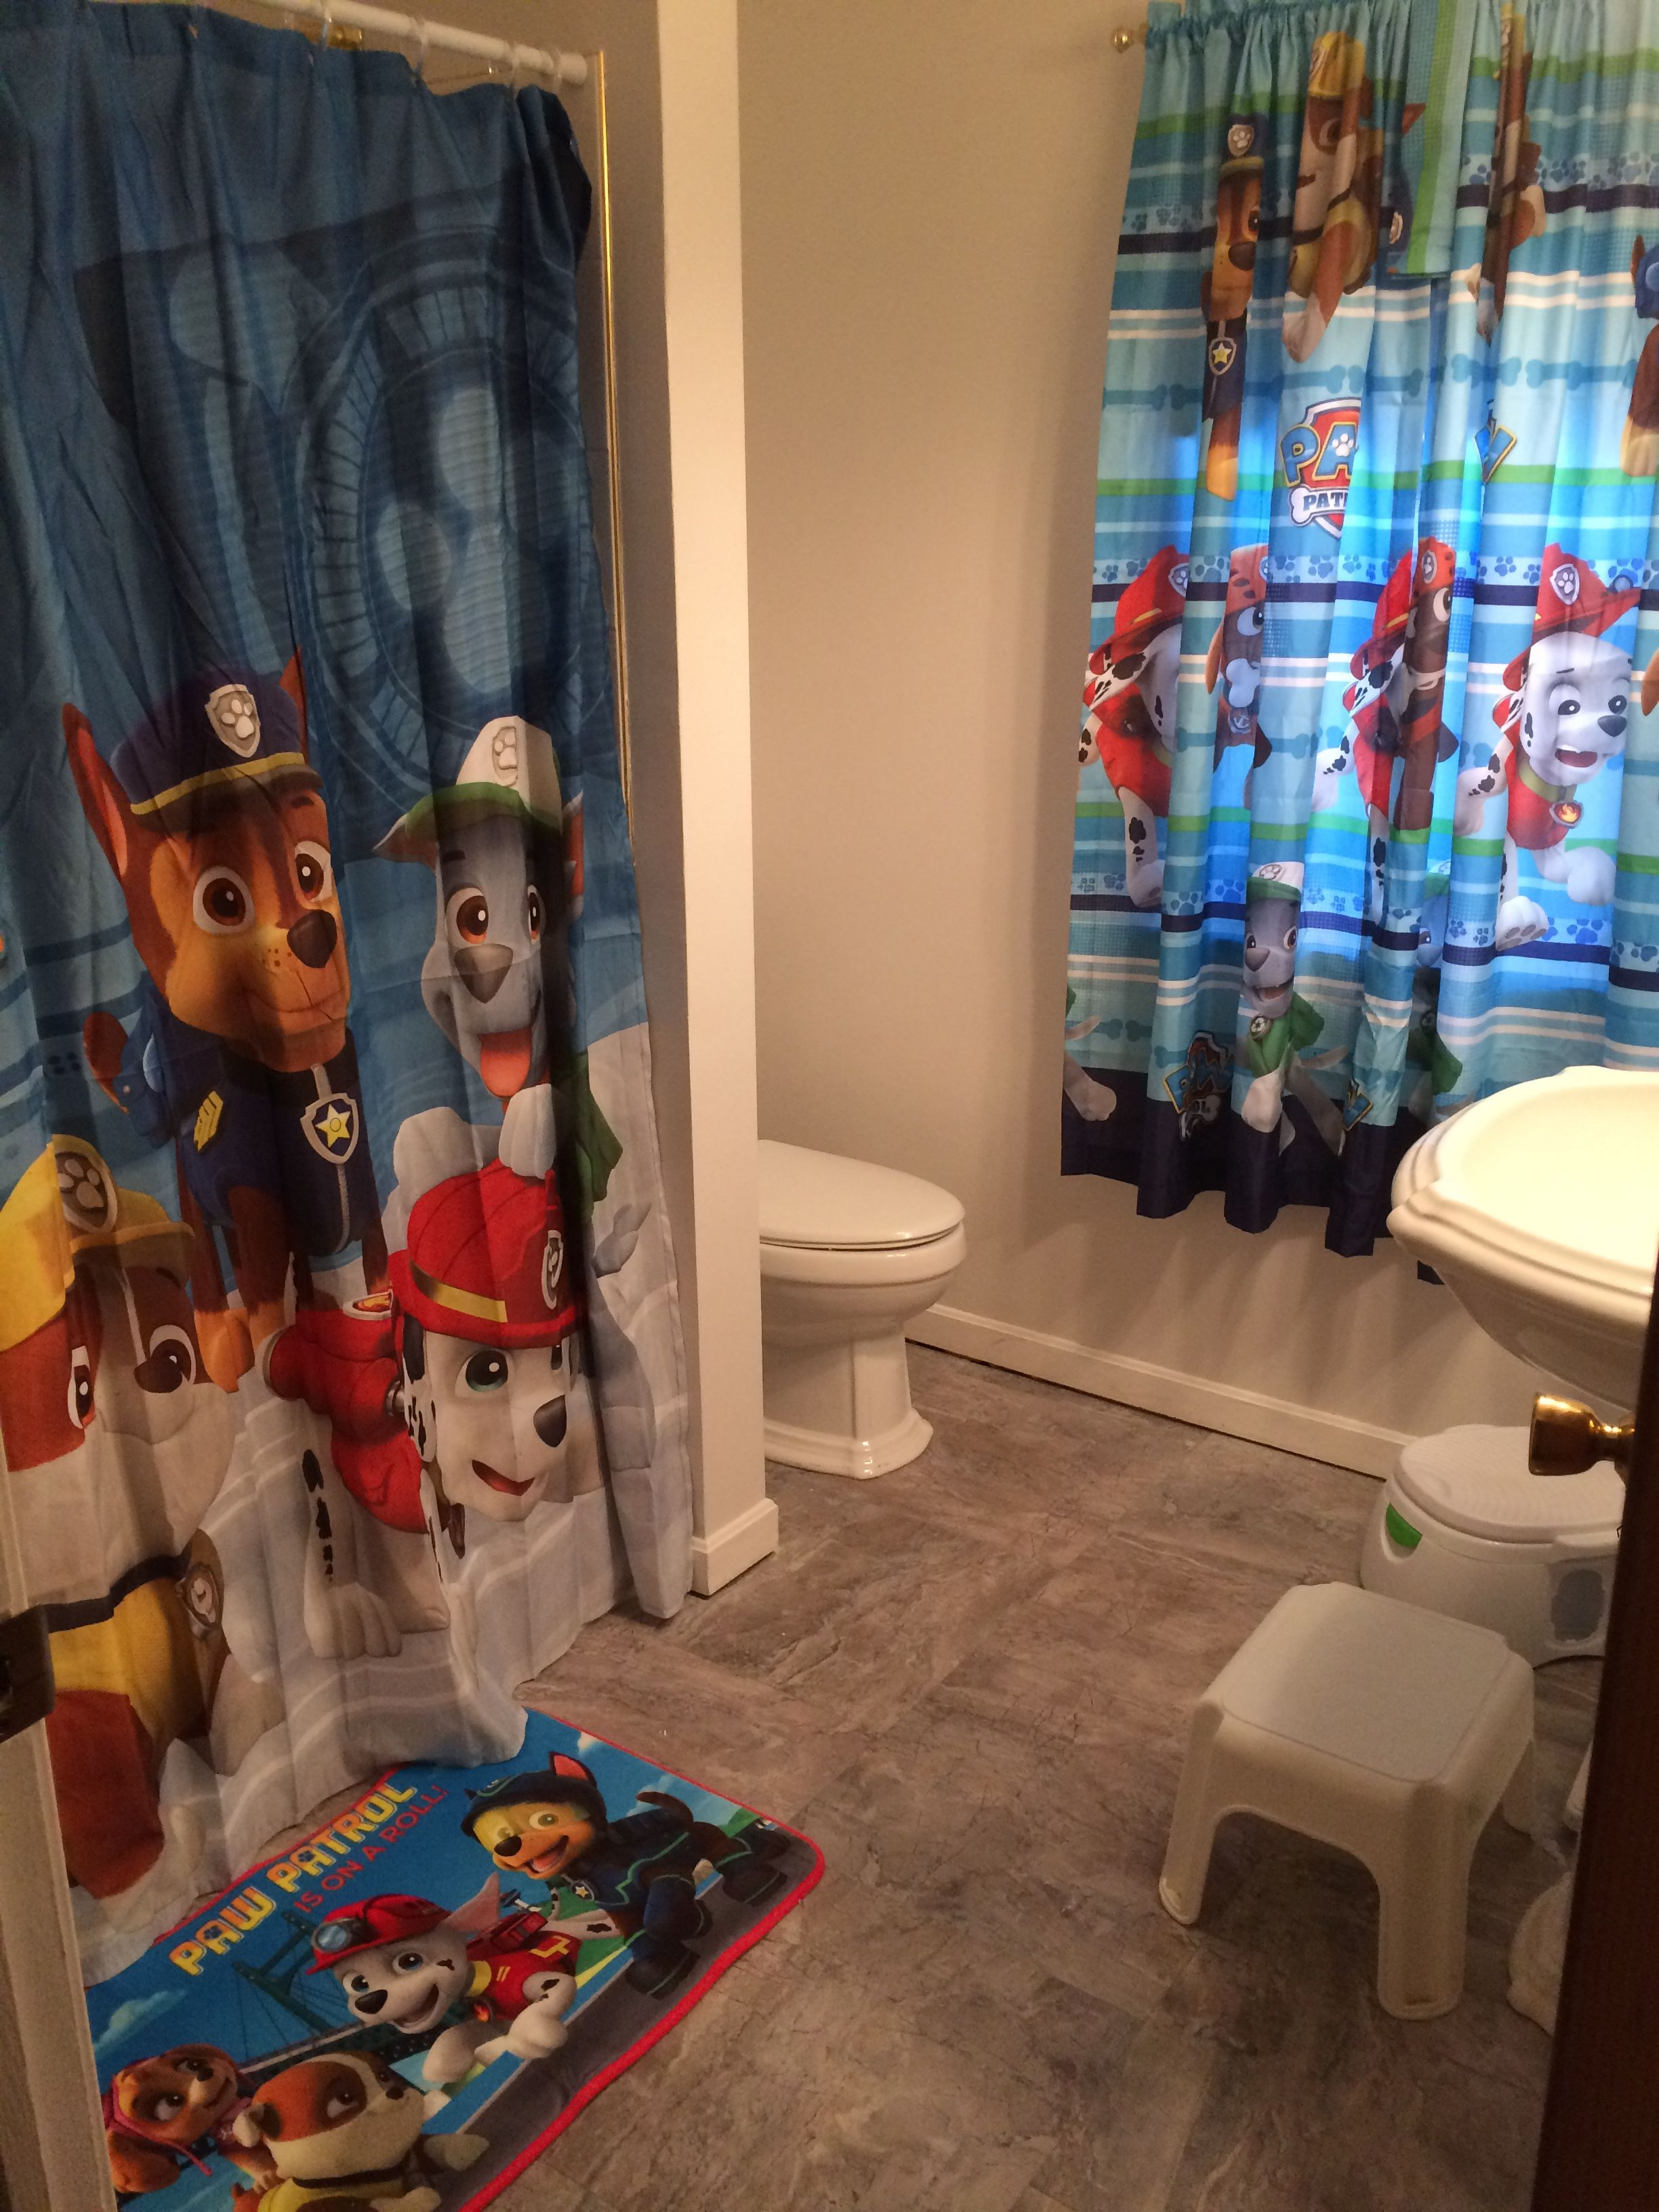 Paw patrol bathroom decor Decor purchased at